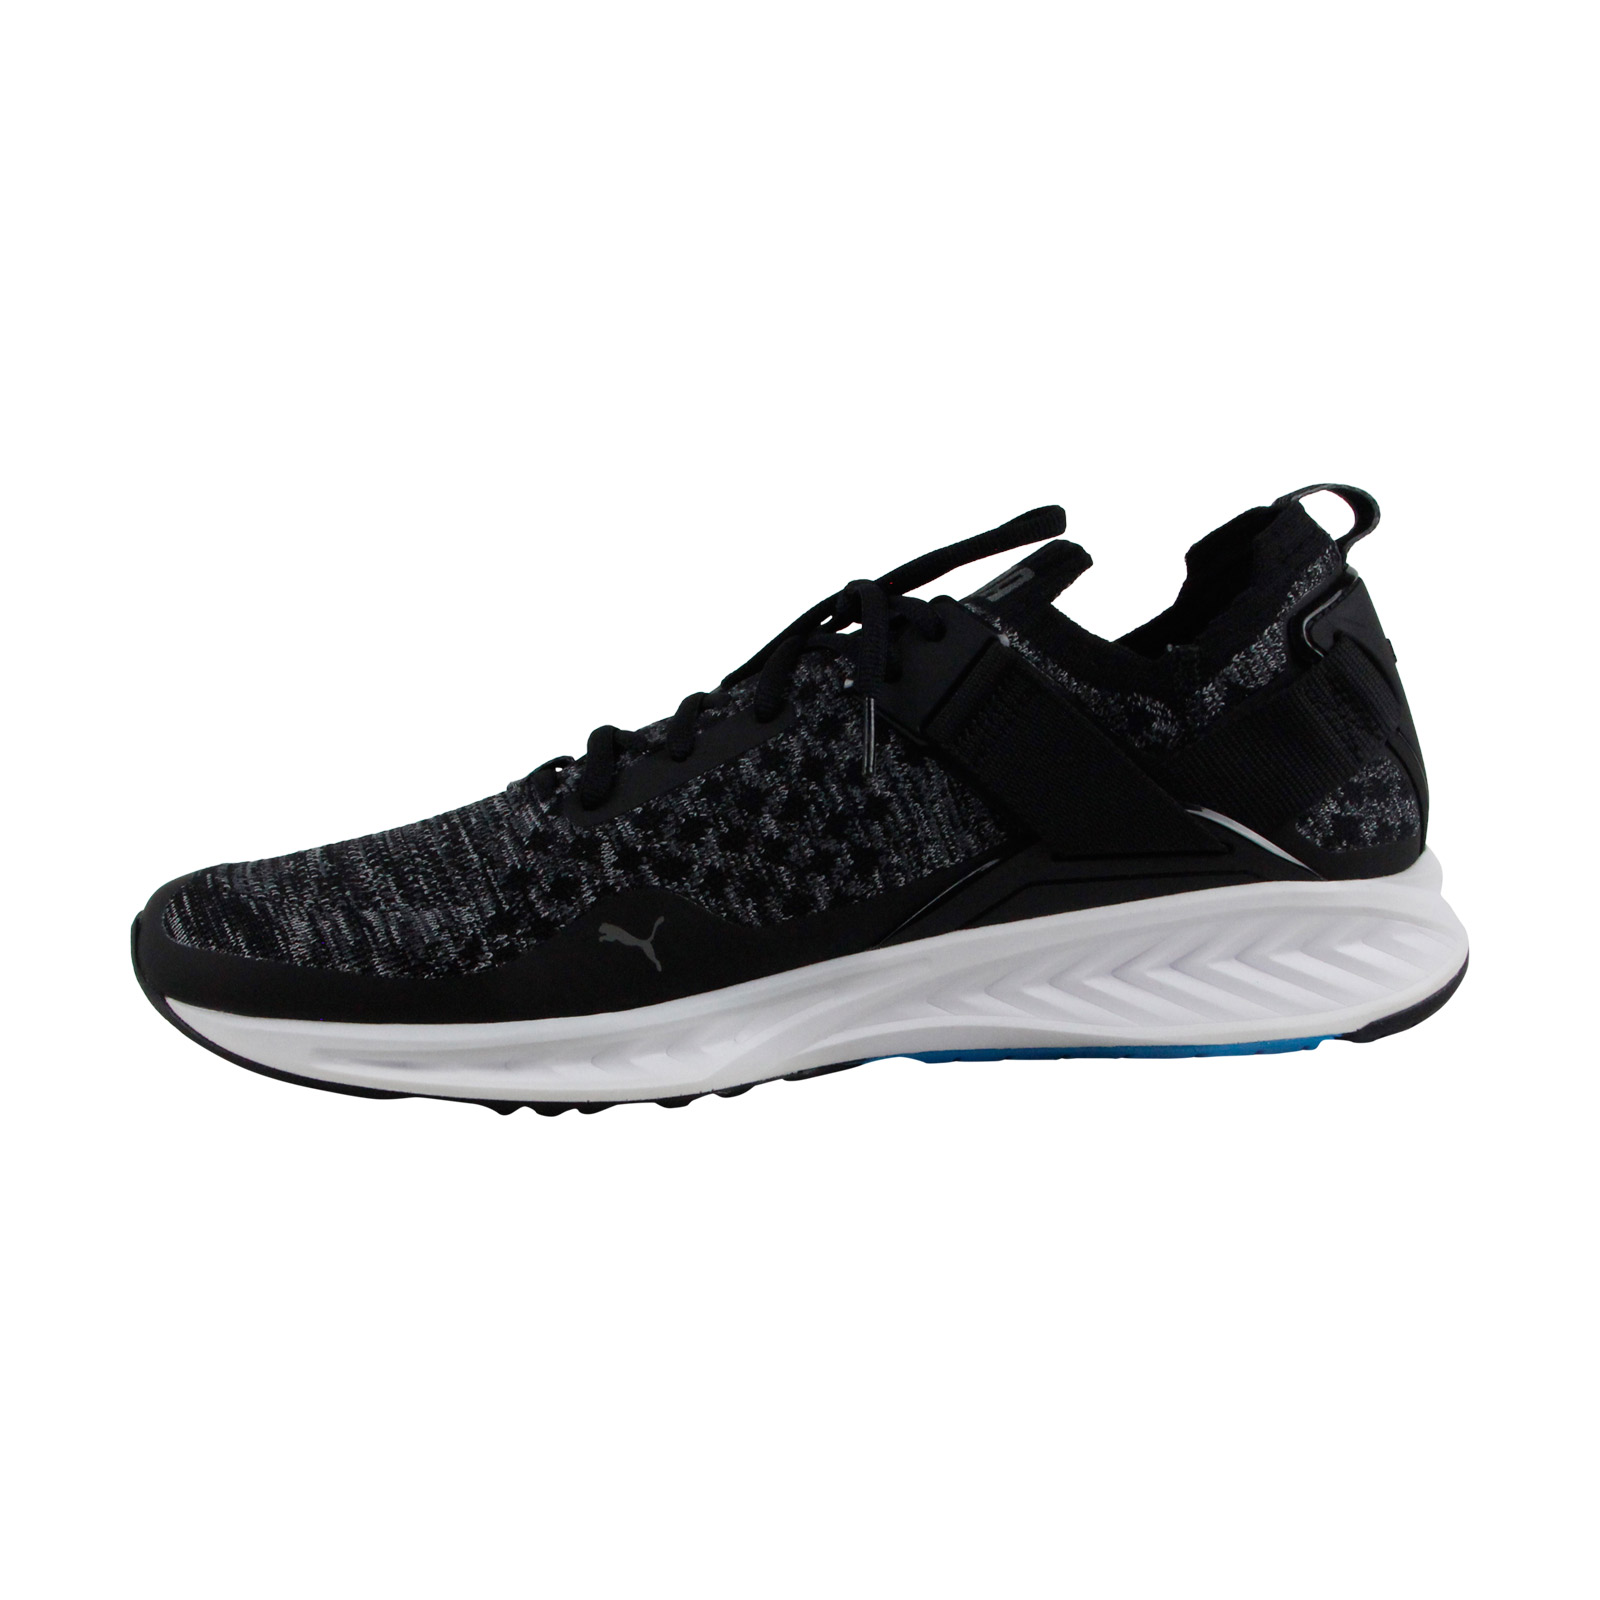 2a84abaa97c8c7 Puma Ignite Evoknit Lo Mens Black Textile Athletic Lace Up Training Shoes 2  2 of 3 See More